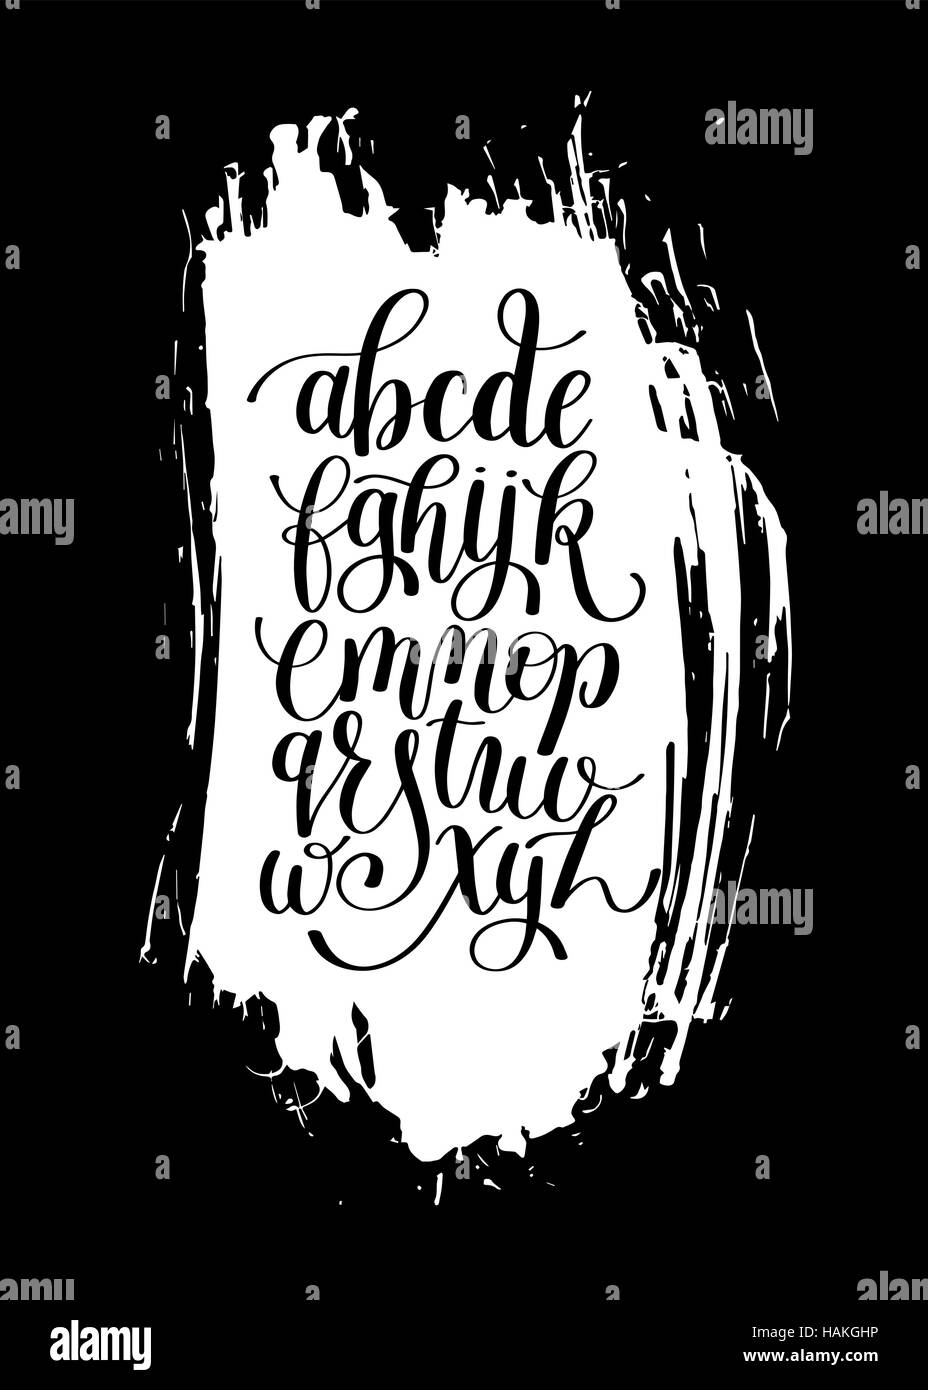 Black And White Hand Lettering Alphabet Design On Brush Stroke S